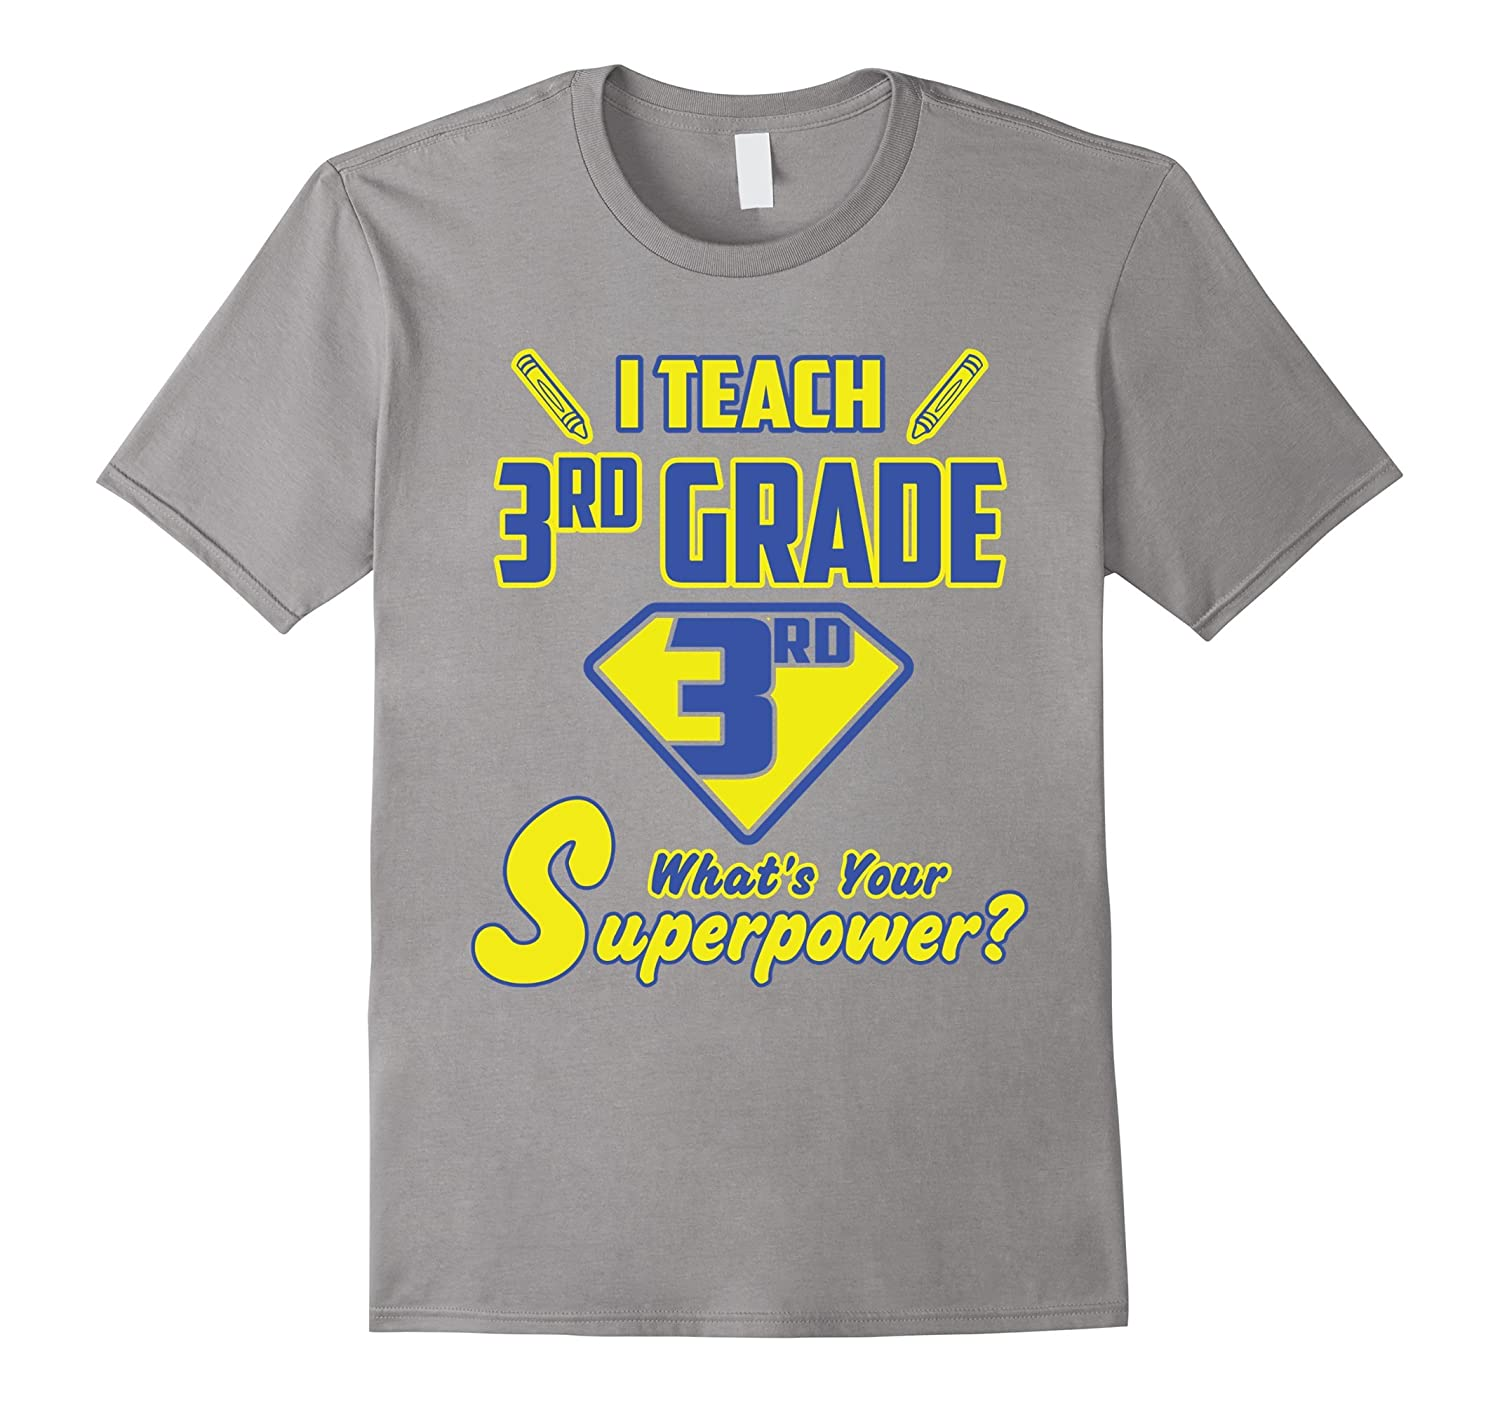 2 Sided Superhero I Teach 3rd Grade Whats Your Superpower?-Vaci